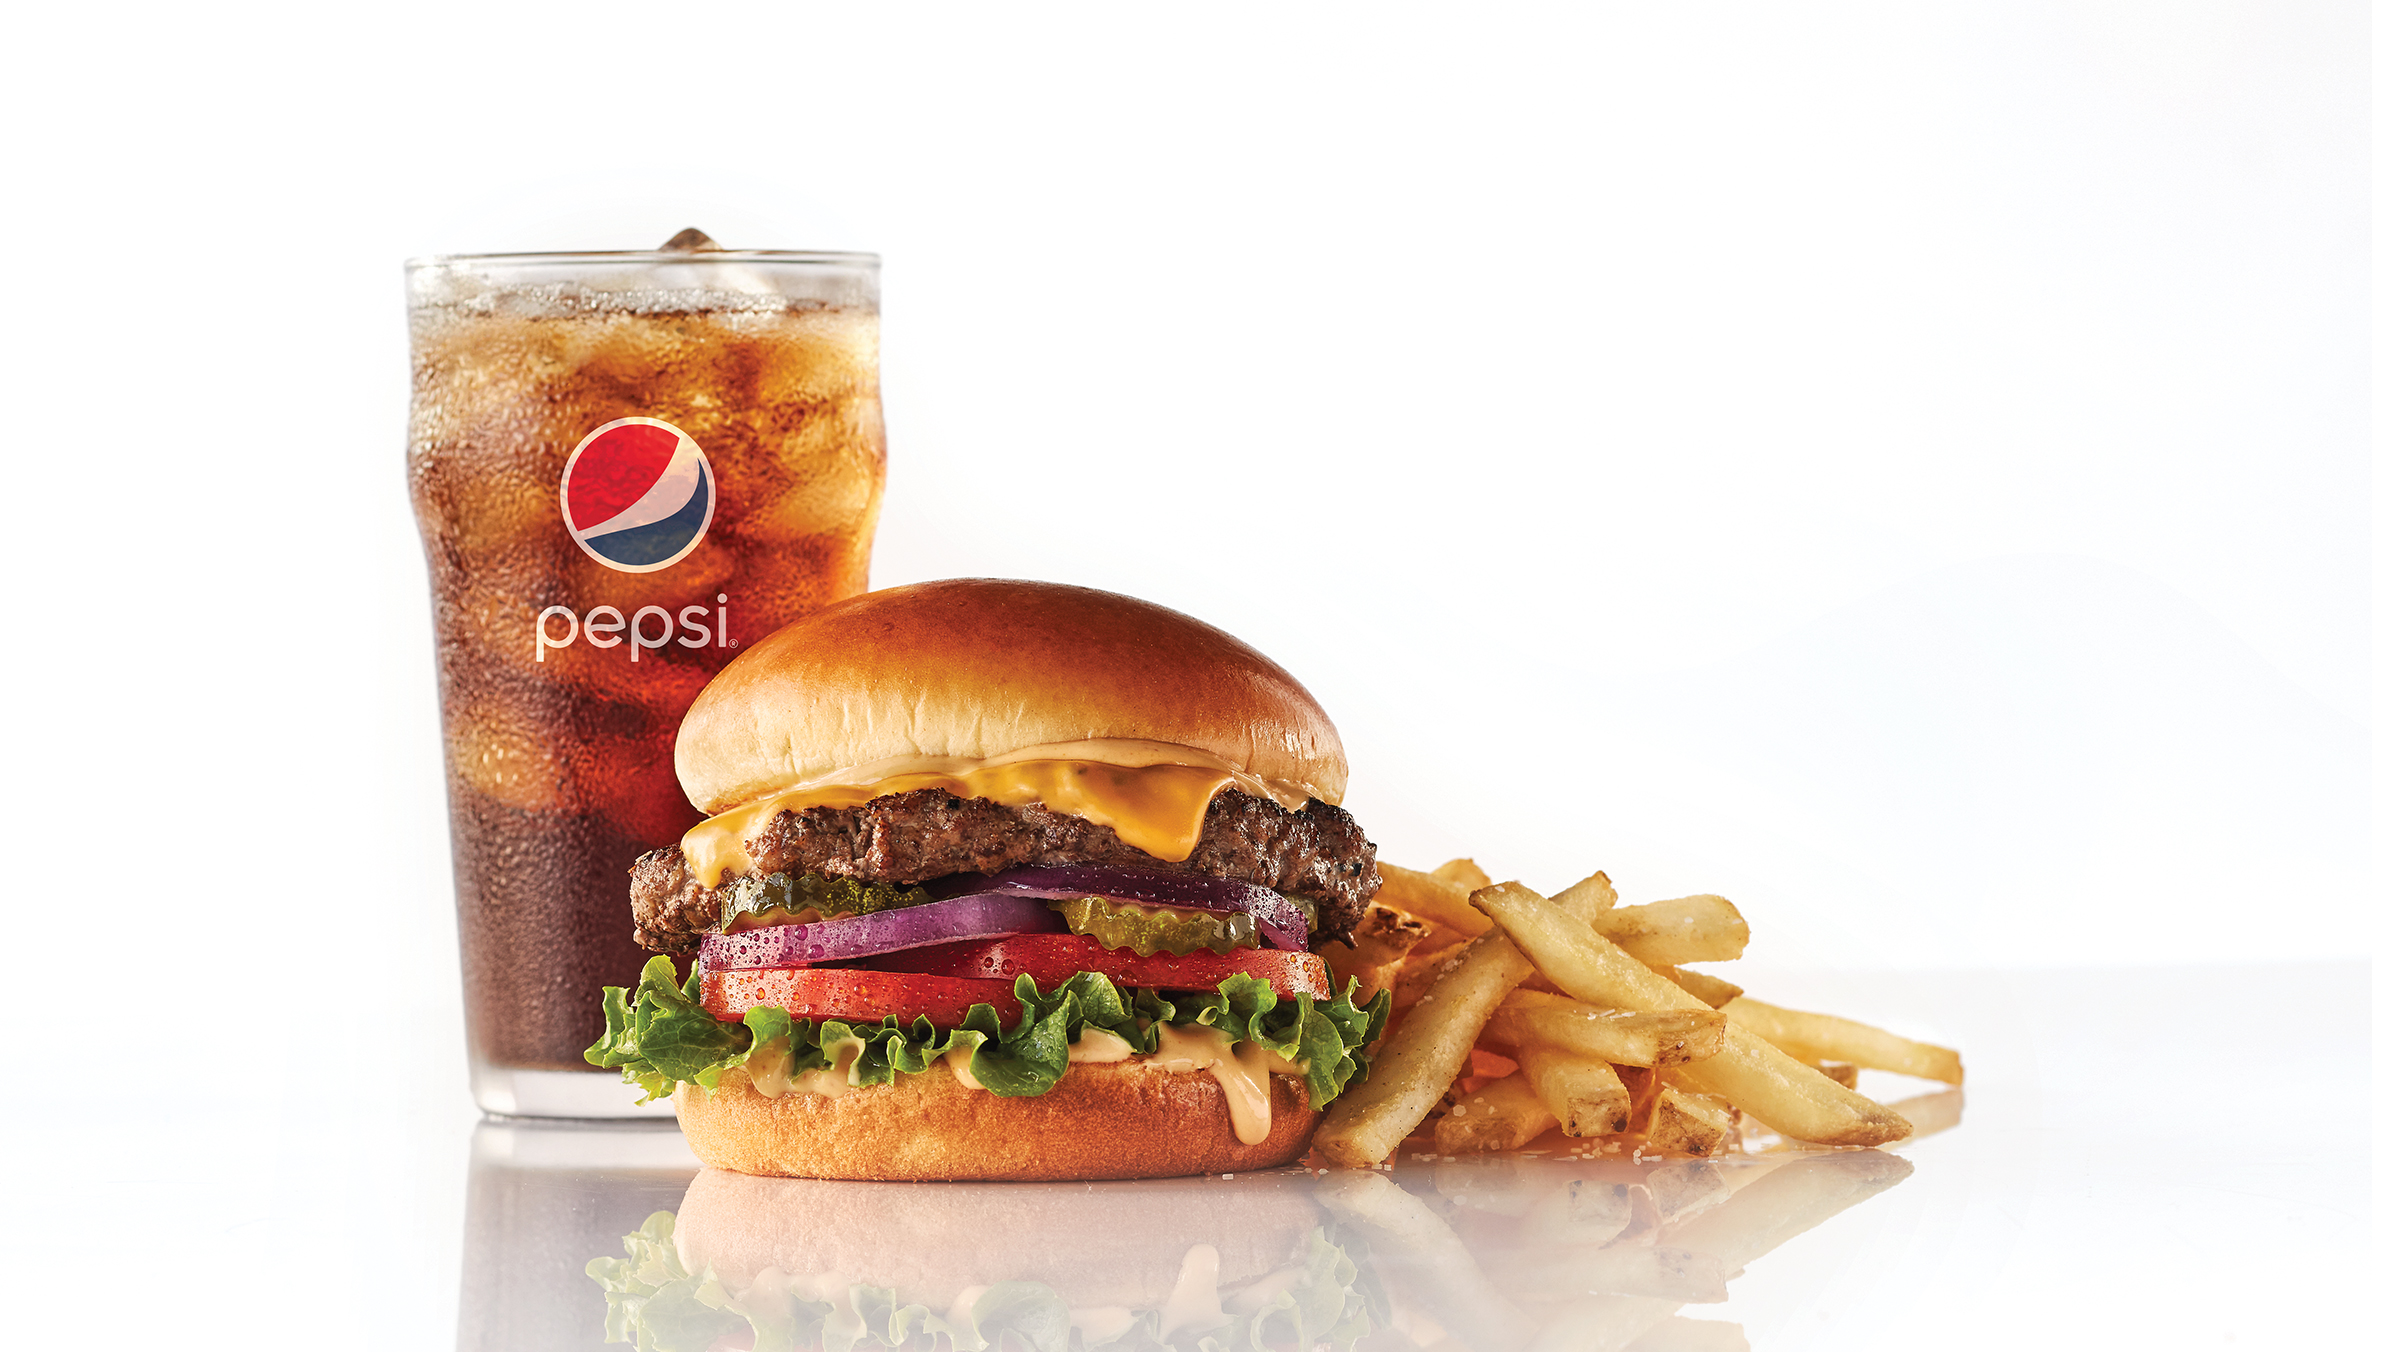 Classic Steakburger Fries and Pepsi®